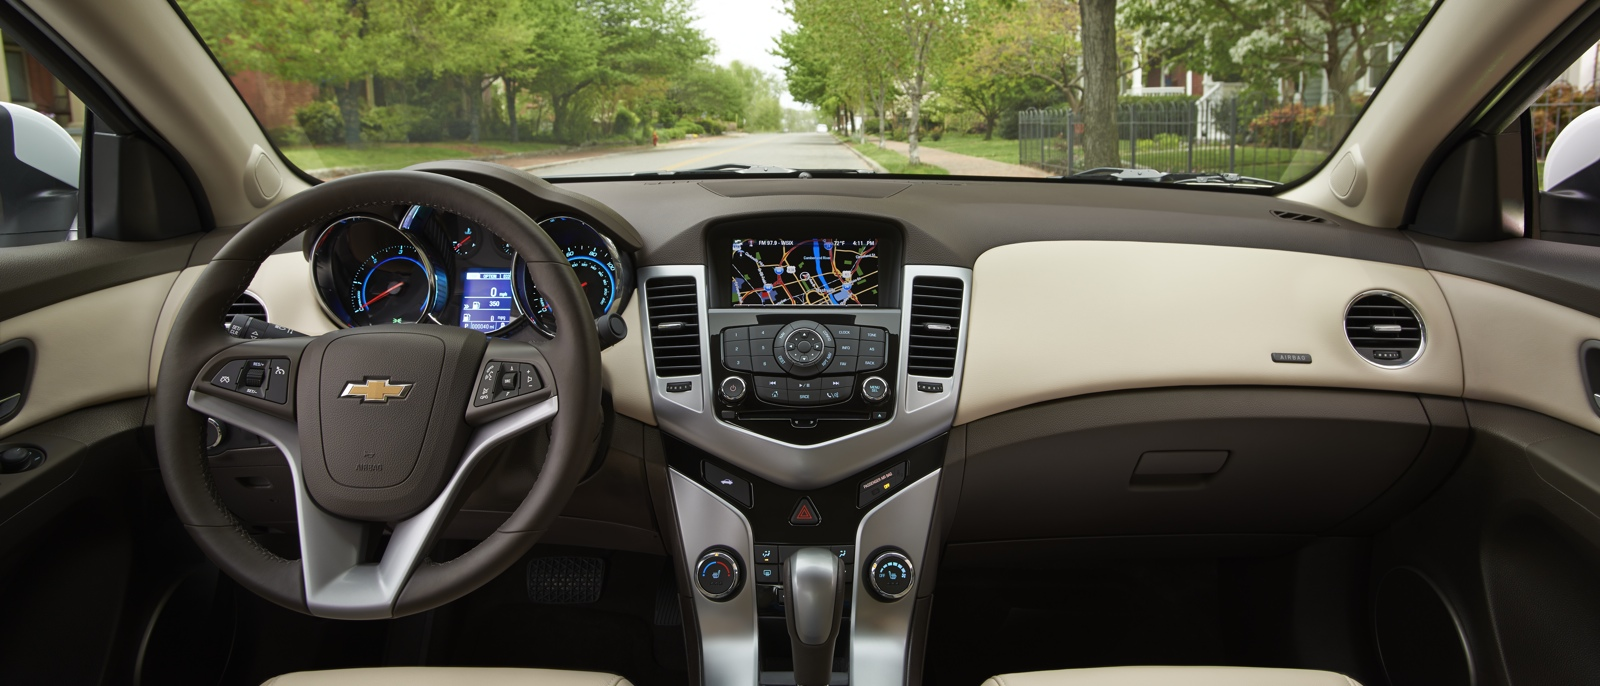 2015 Chevrolet Cruze Interior ... Nice Ideas